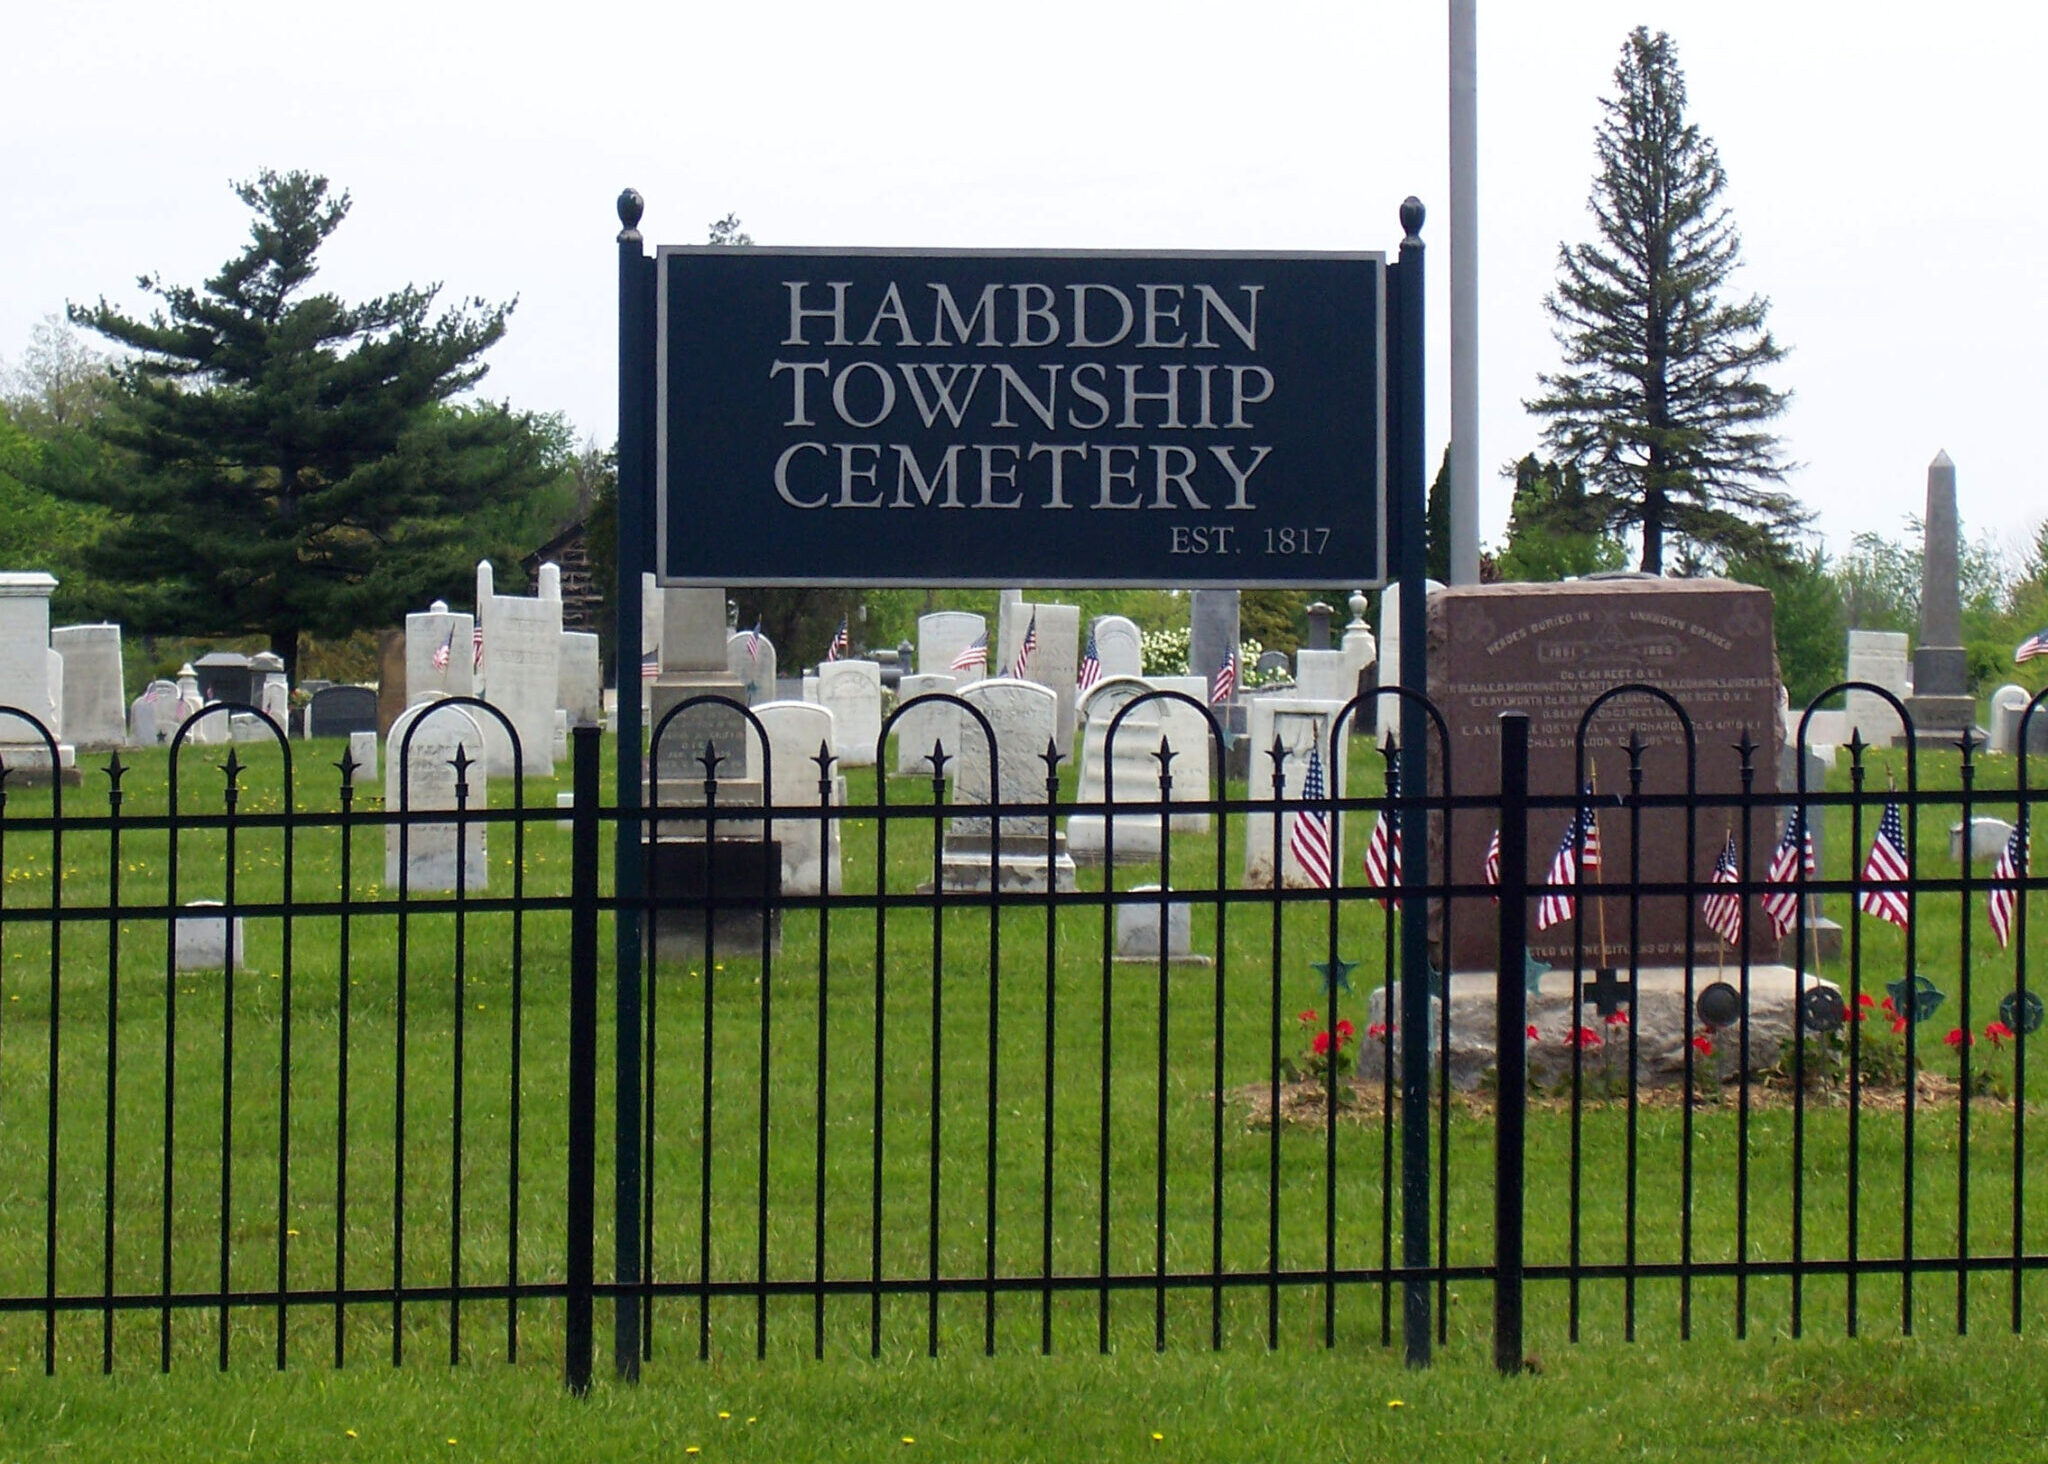 Hambden Township Cemetery Signage